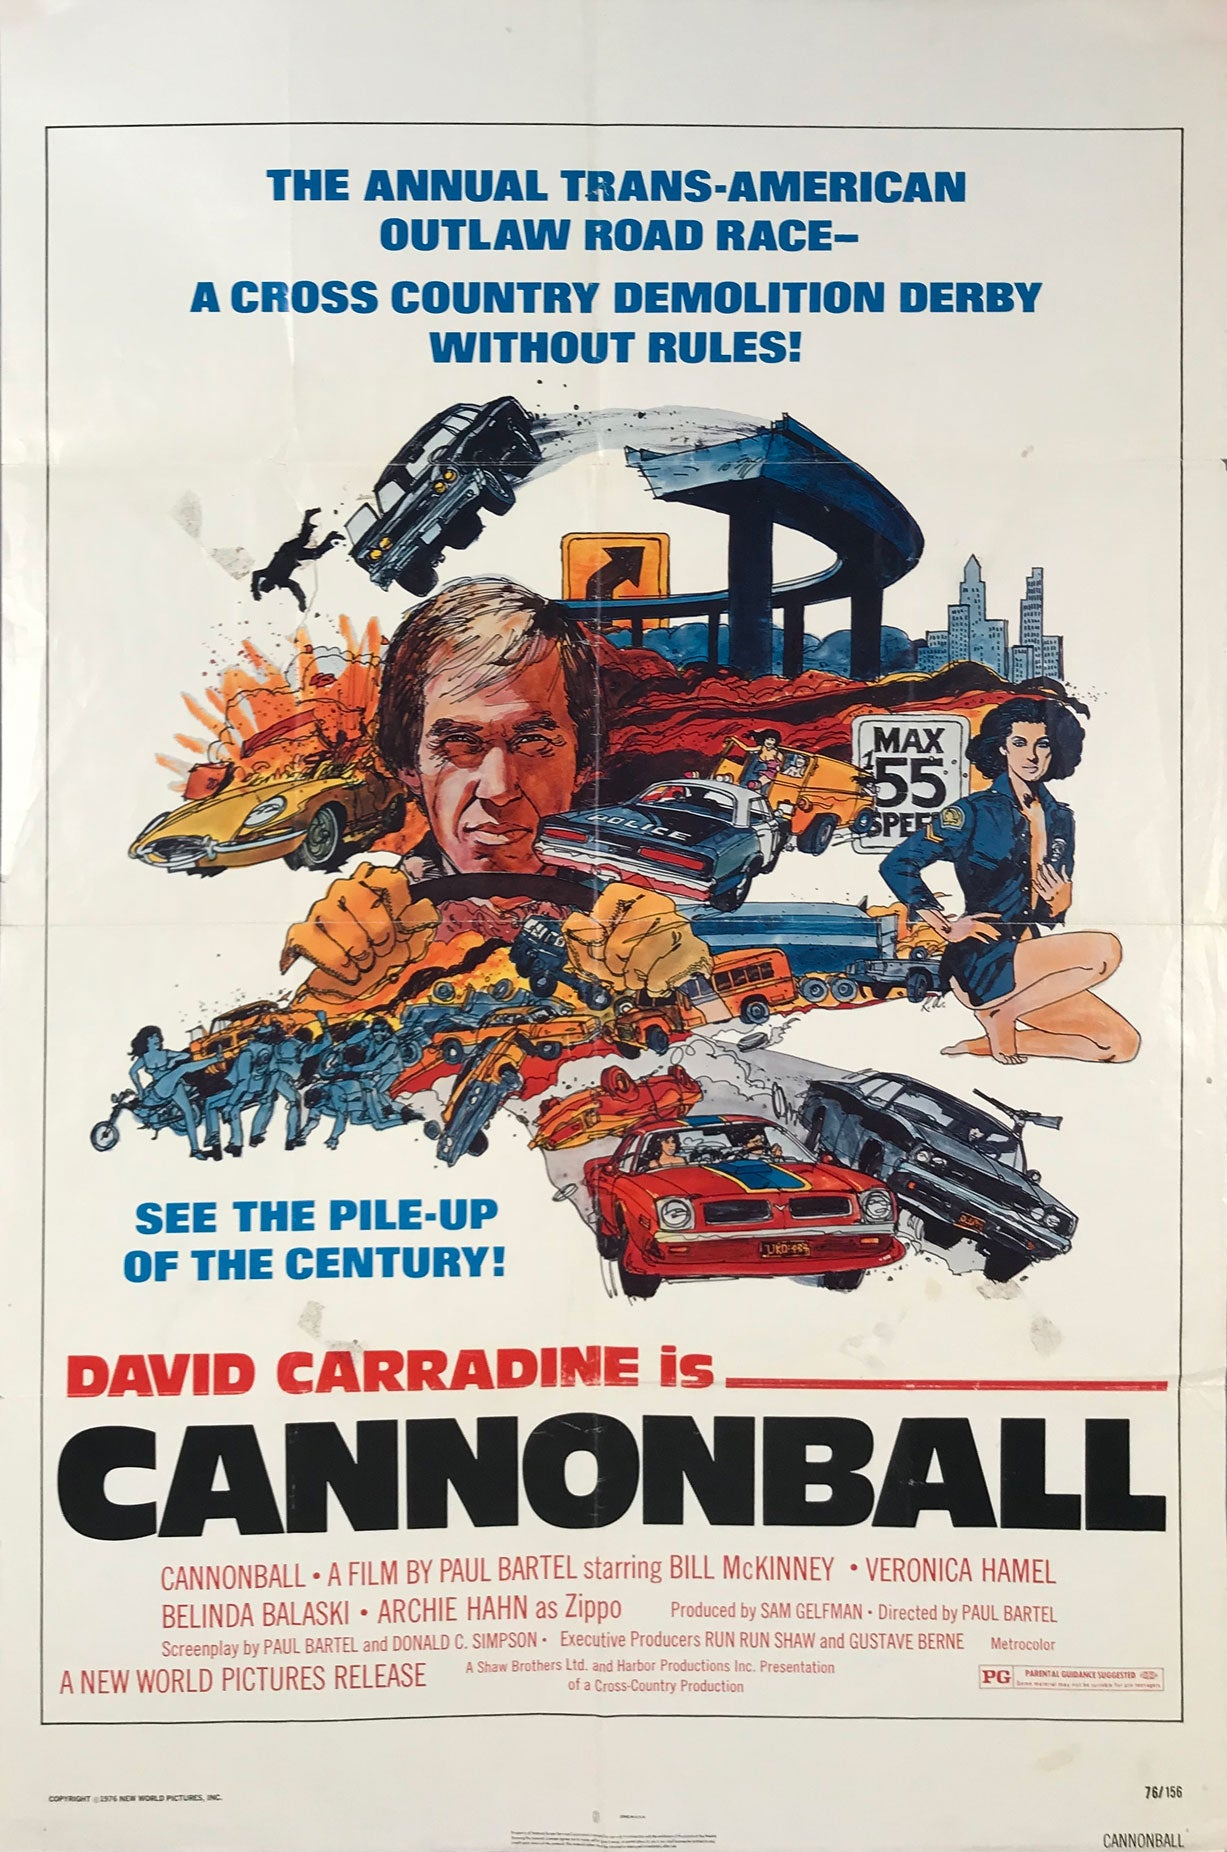 Cannonball movie poster with David Carradine - $175.00